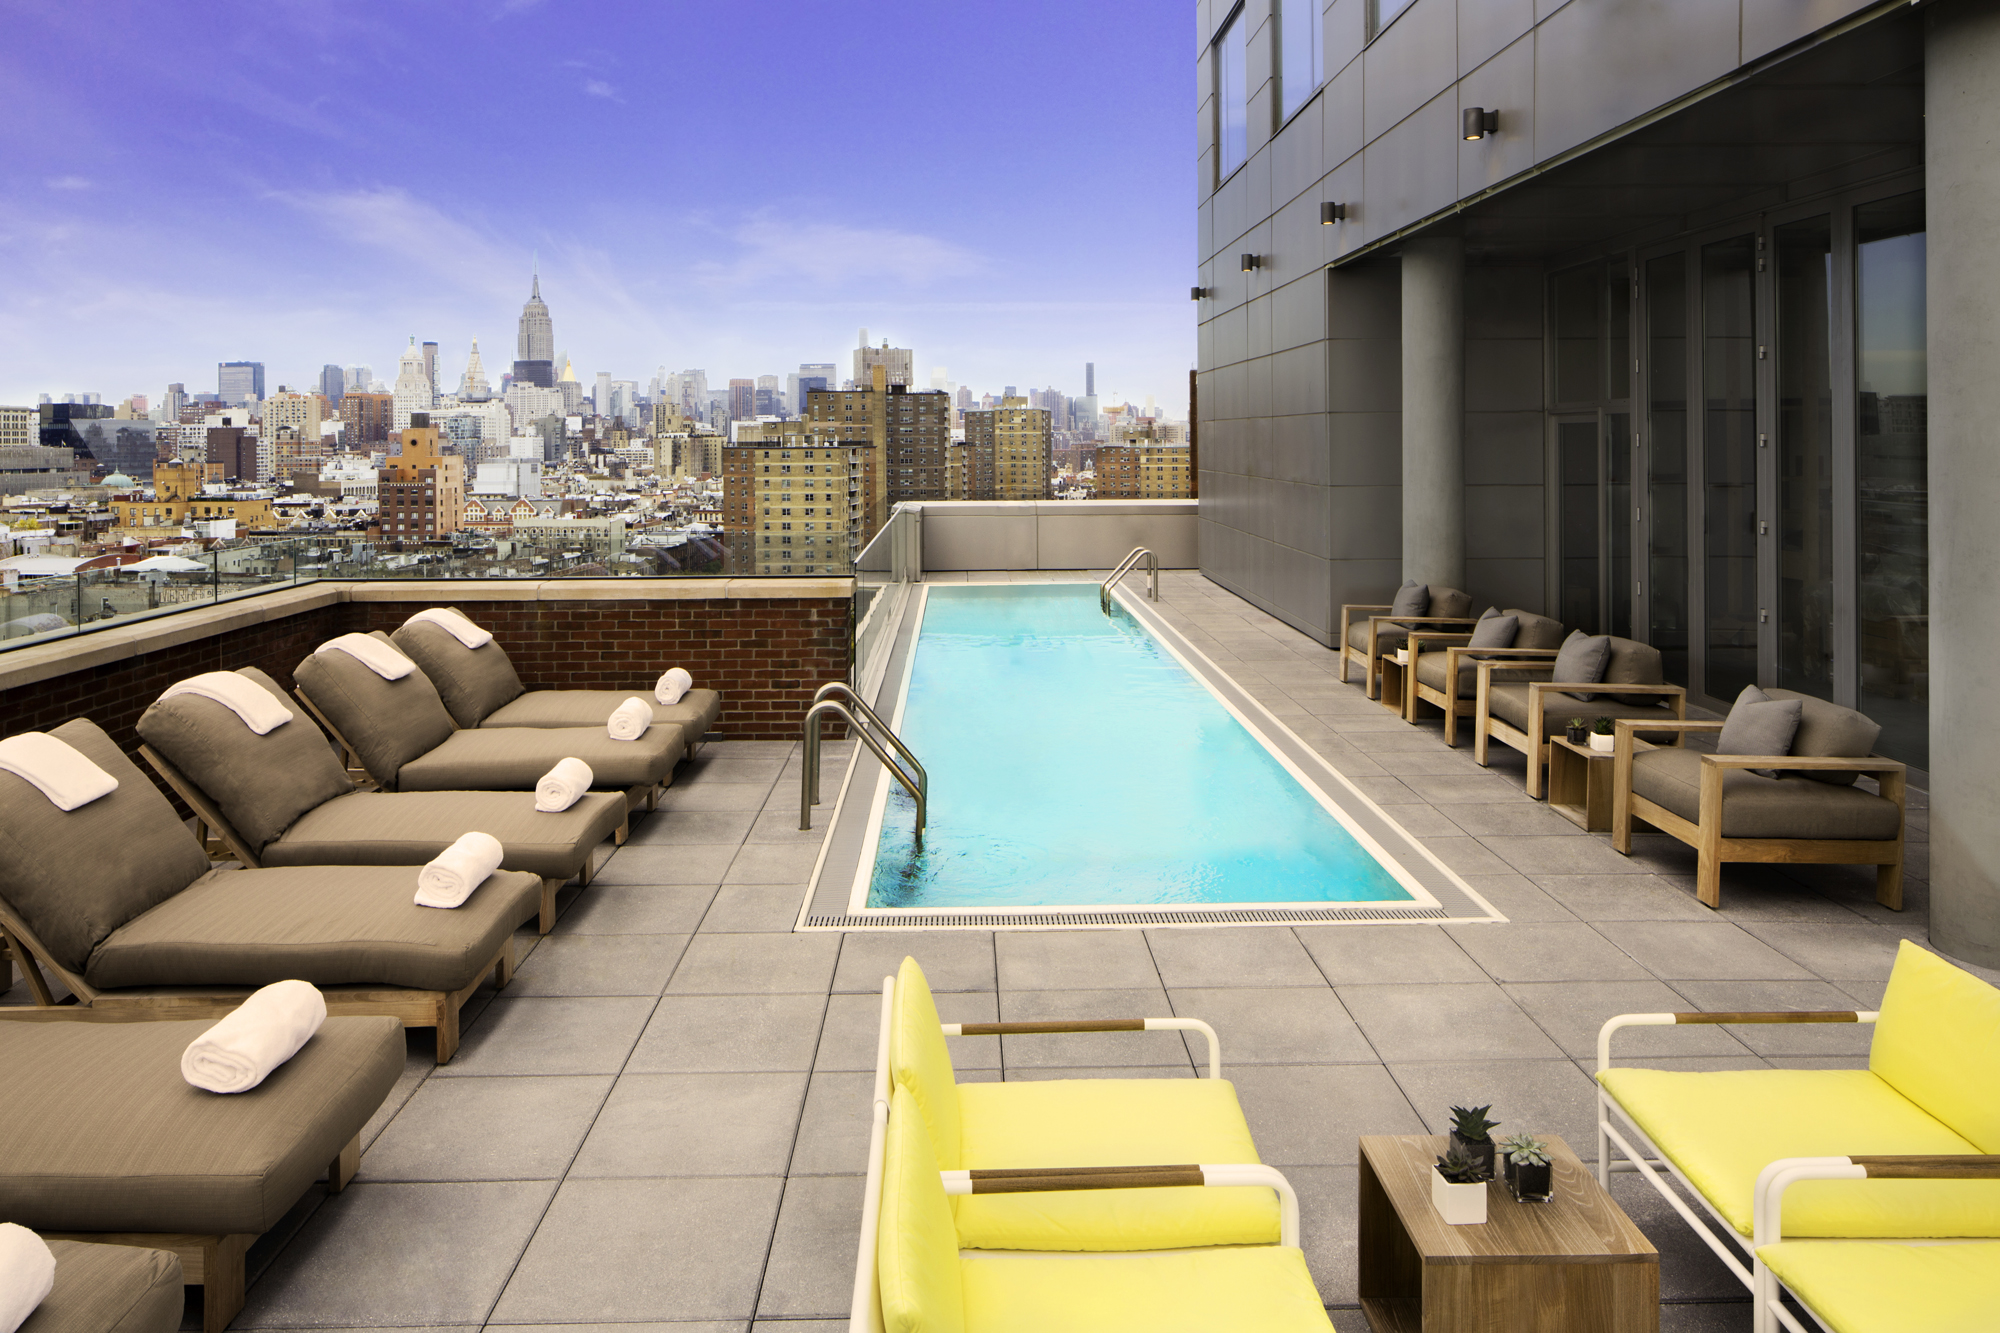 The rooftop pool at Mr. Purple